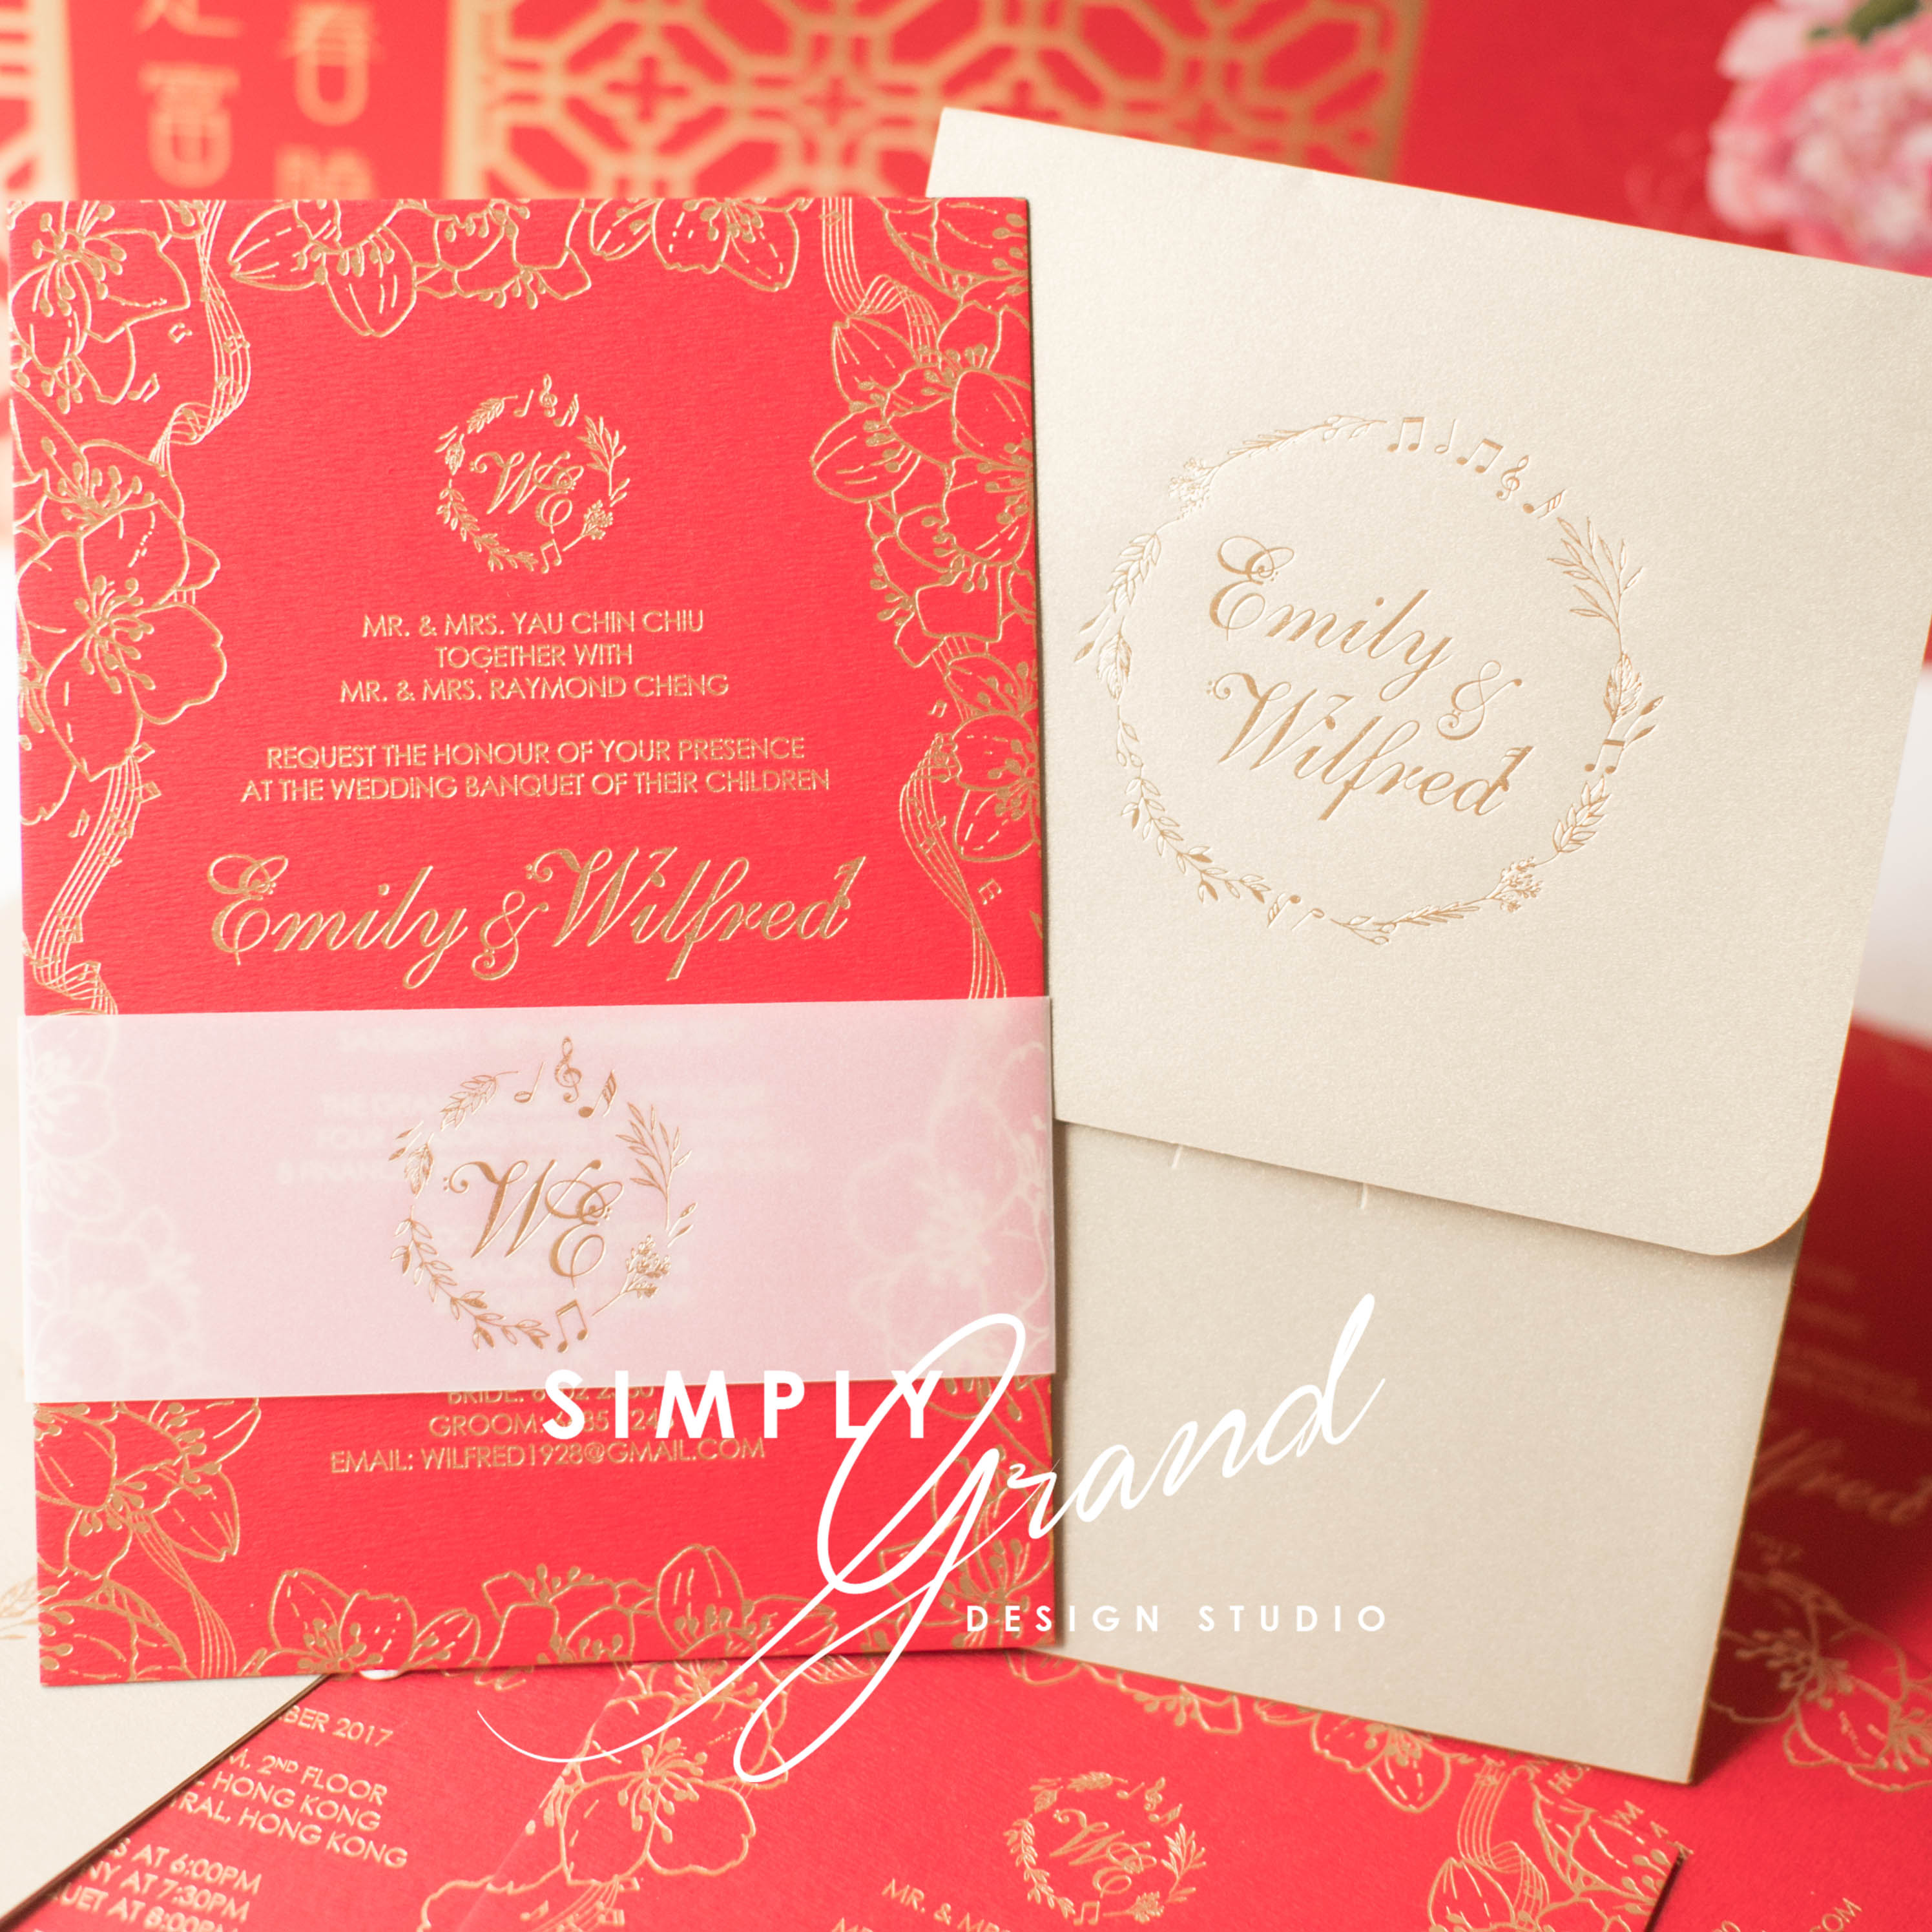 Simply_Grand_Production_Stationery_Invitation_Card_7_3